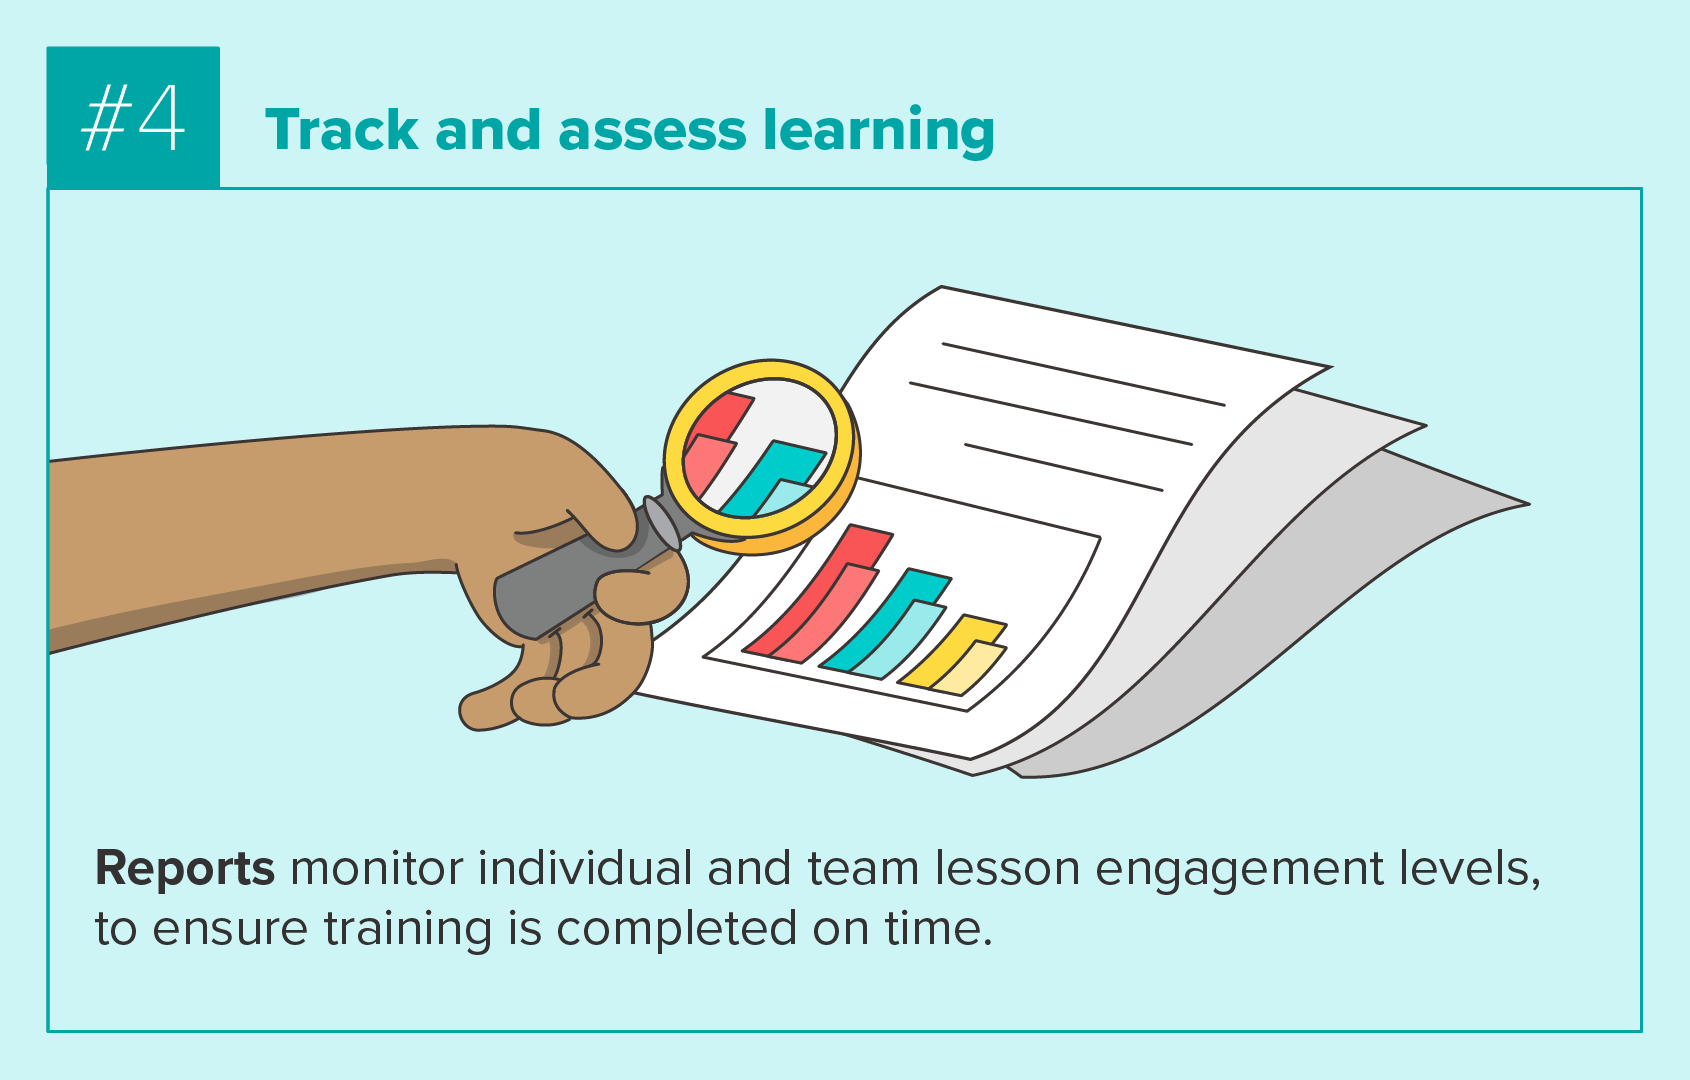 Tracking and assessing learning